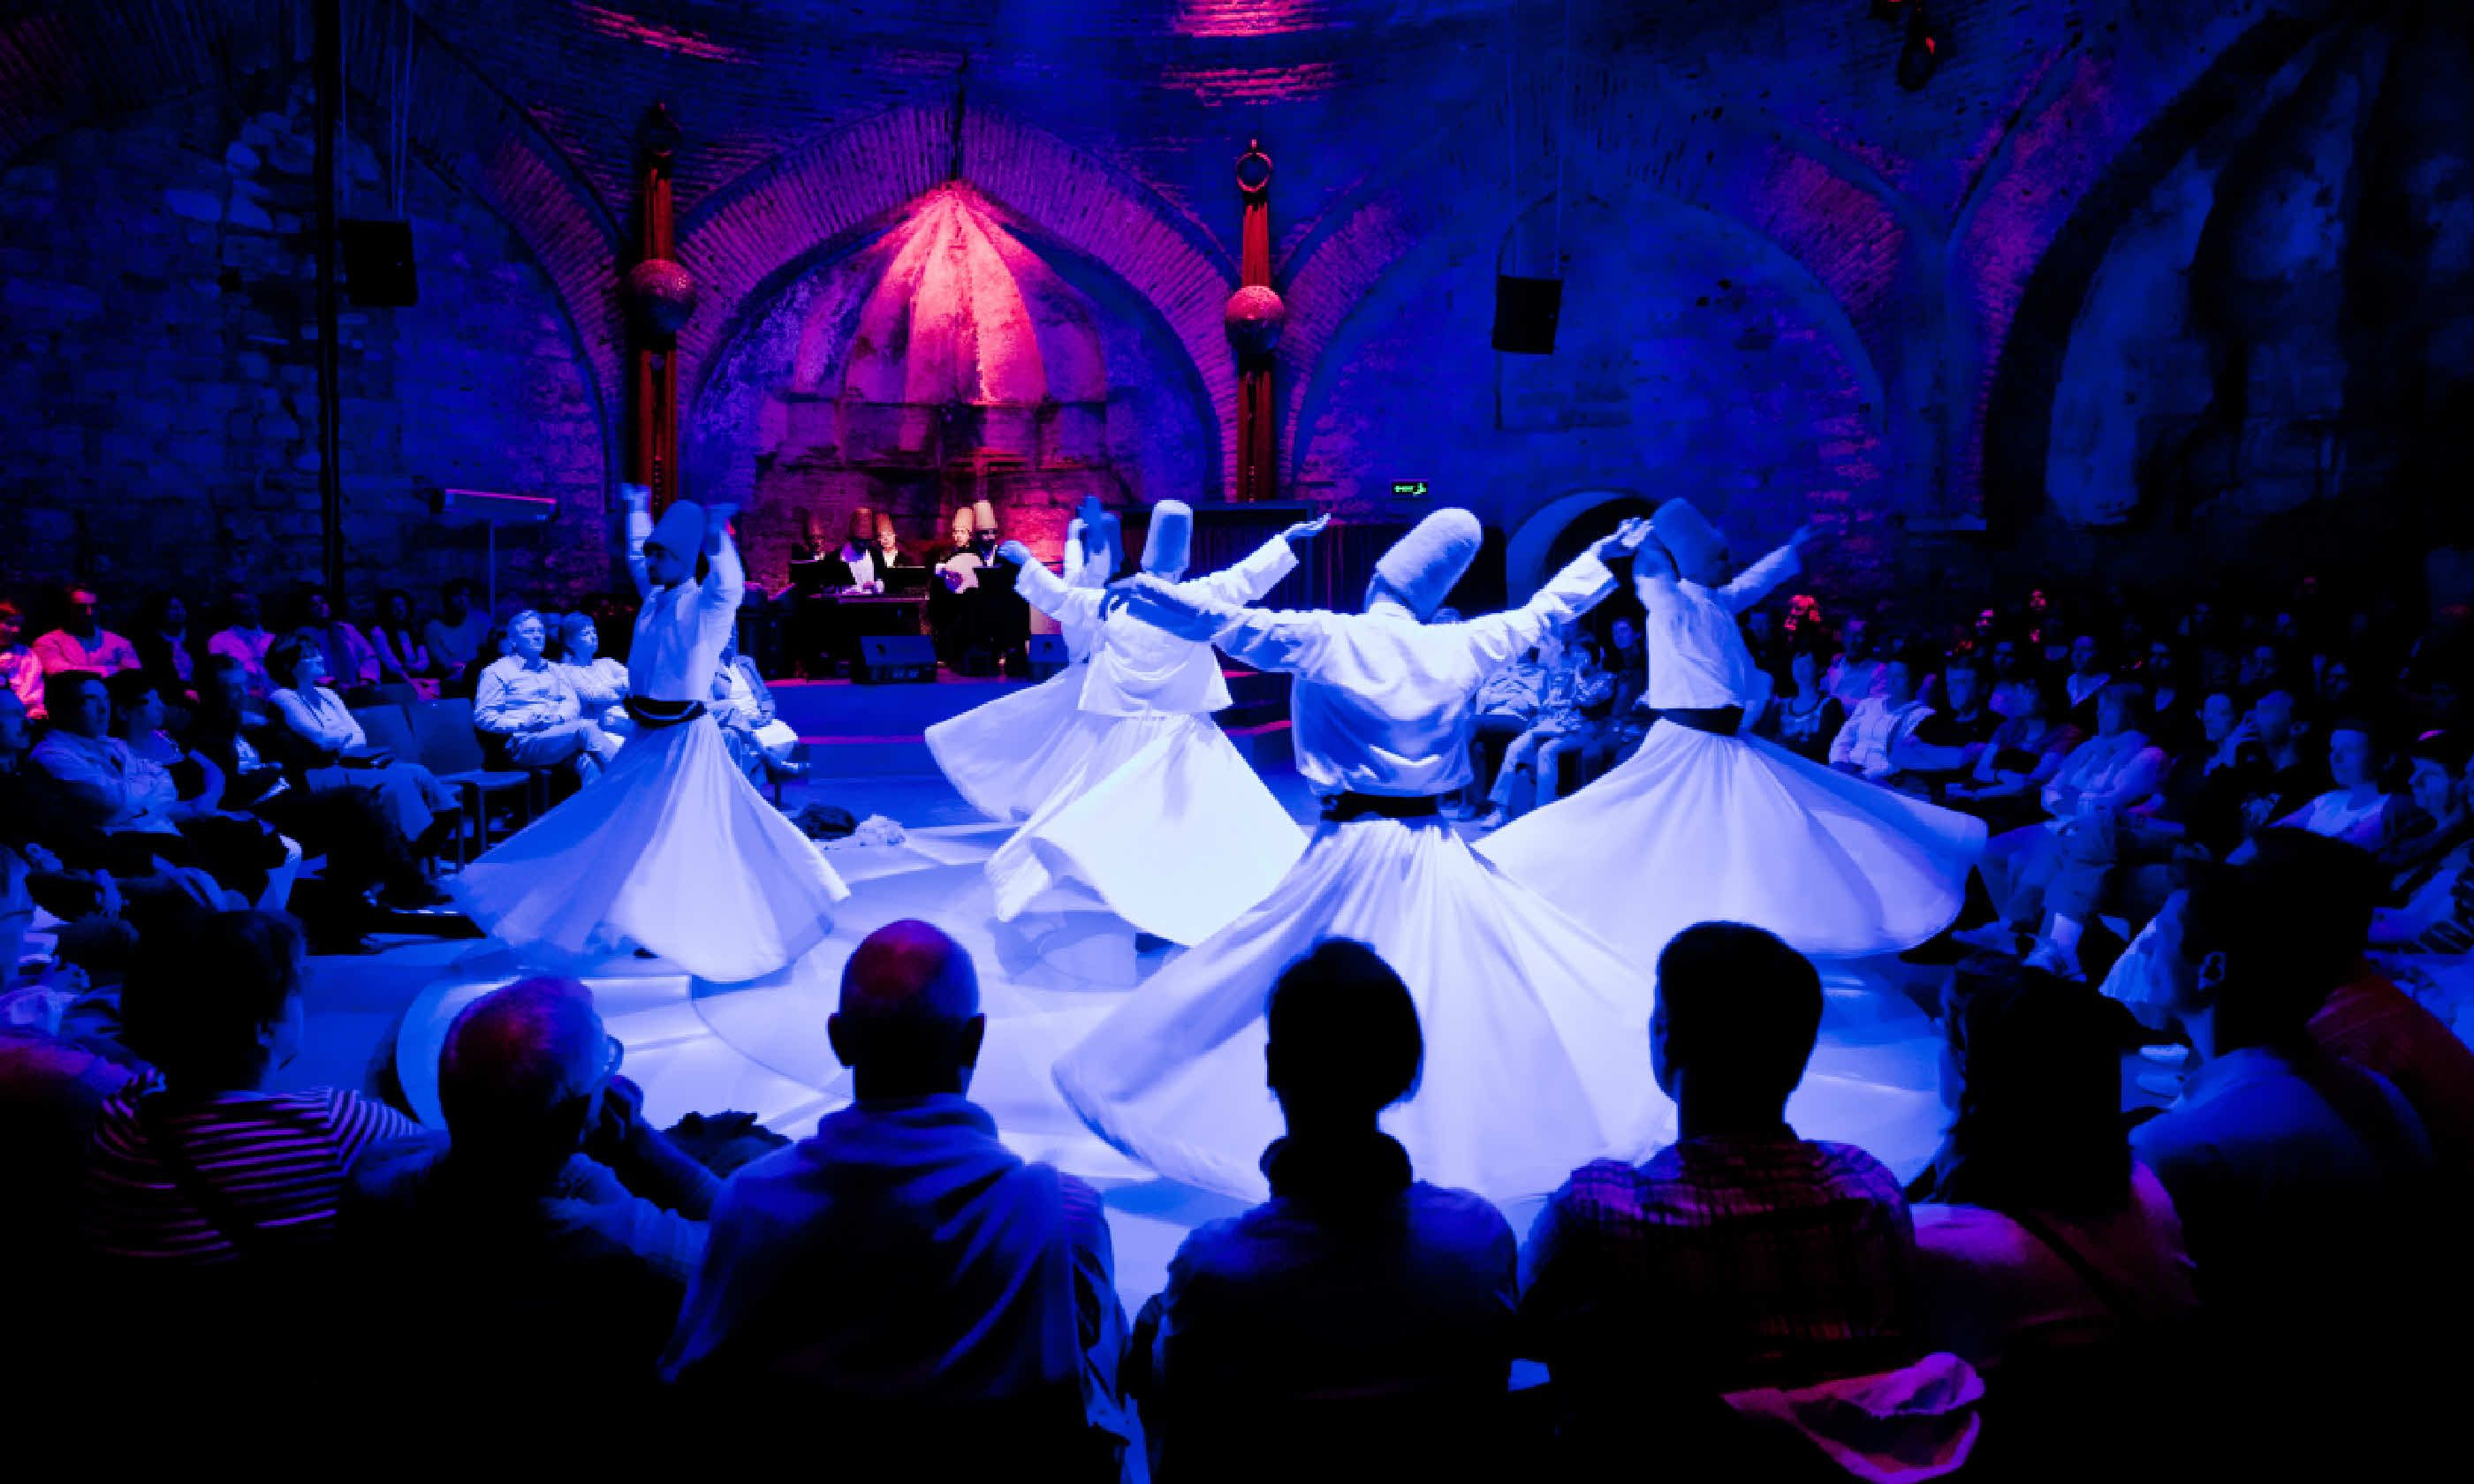 Whirling dervishes, Istanbul (Shutterstock)